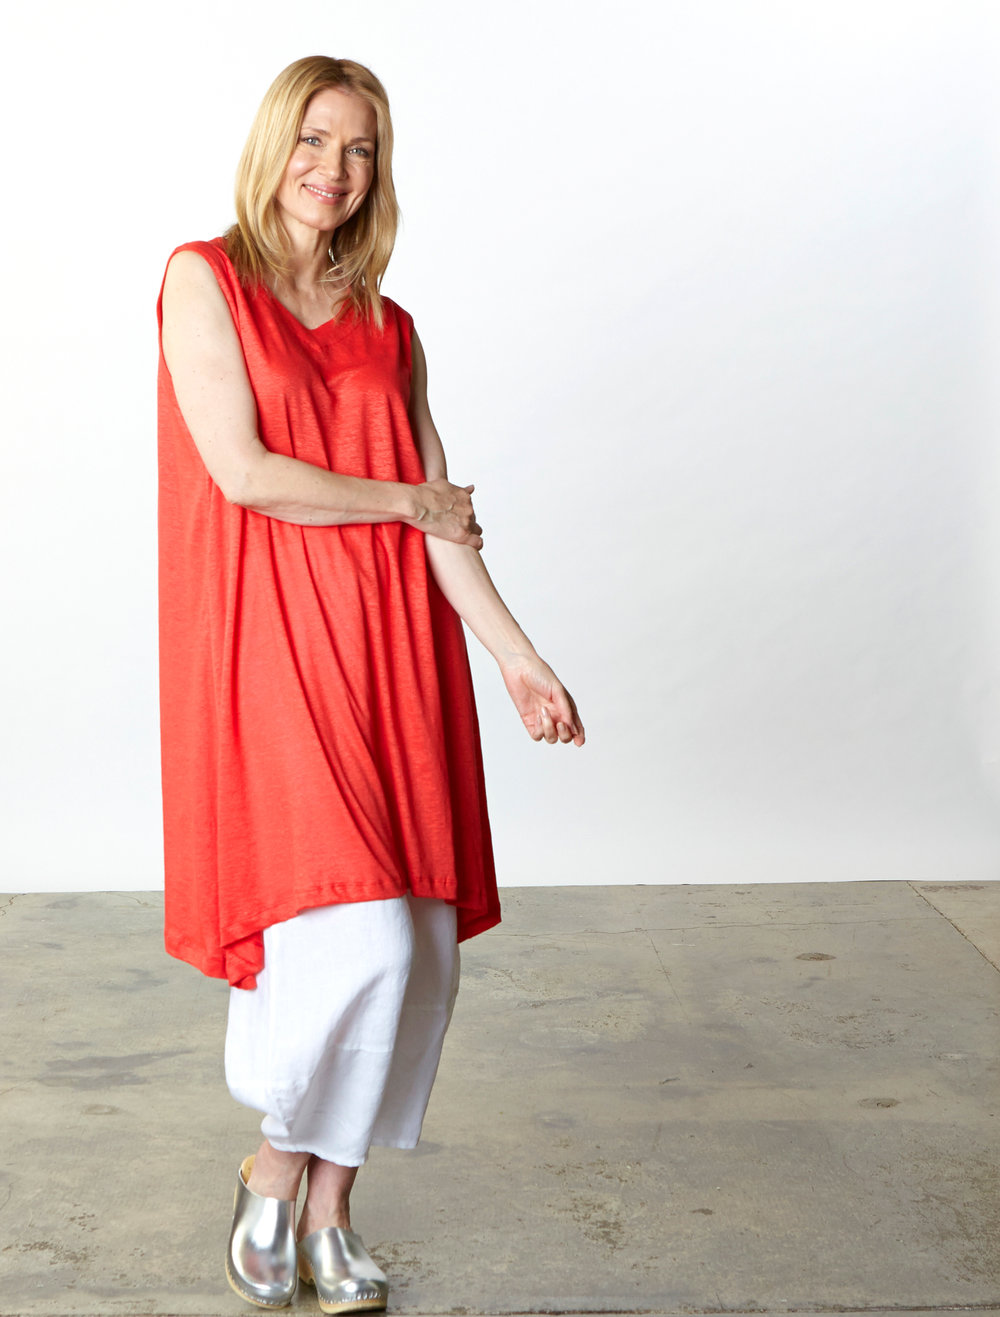 Sena Tunic in Red Italian Linen Knit, Oliver Pant in White Light Linen